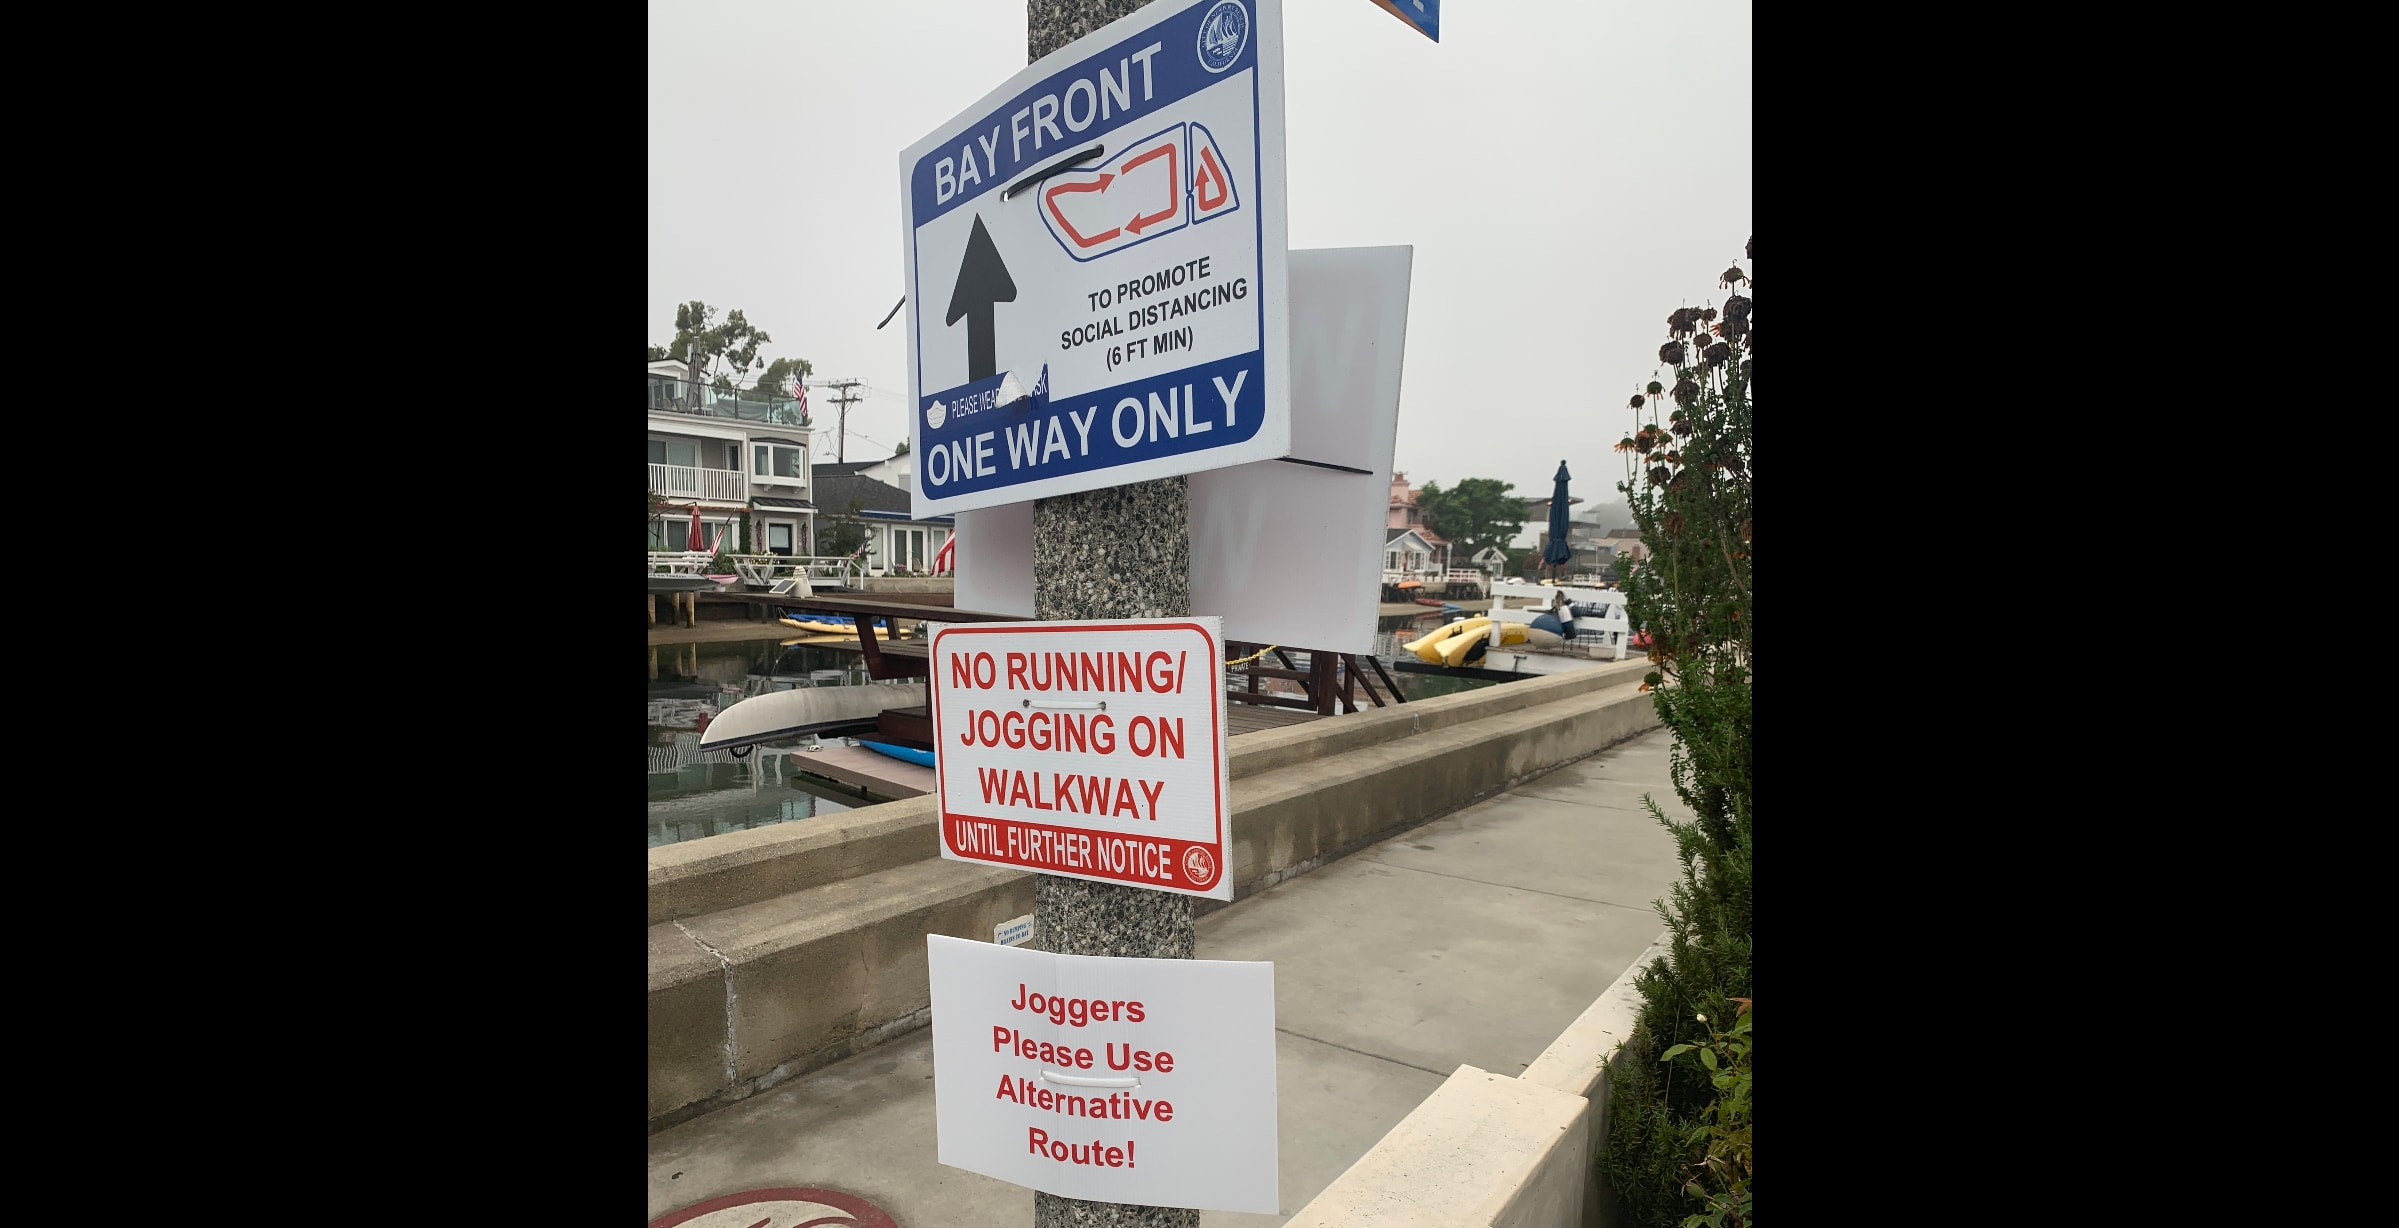 Balboa Island One Way Signs by Anita Rovsek